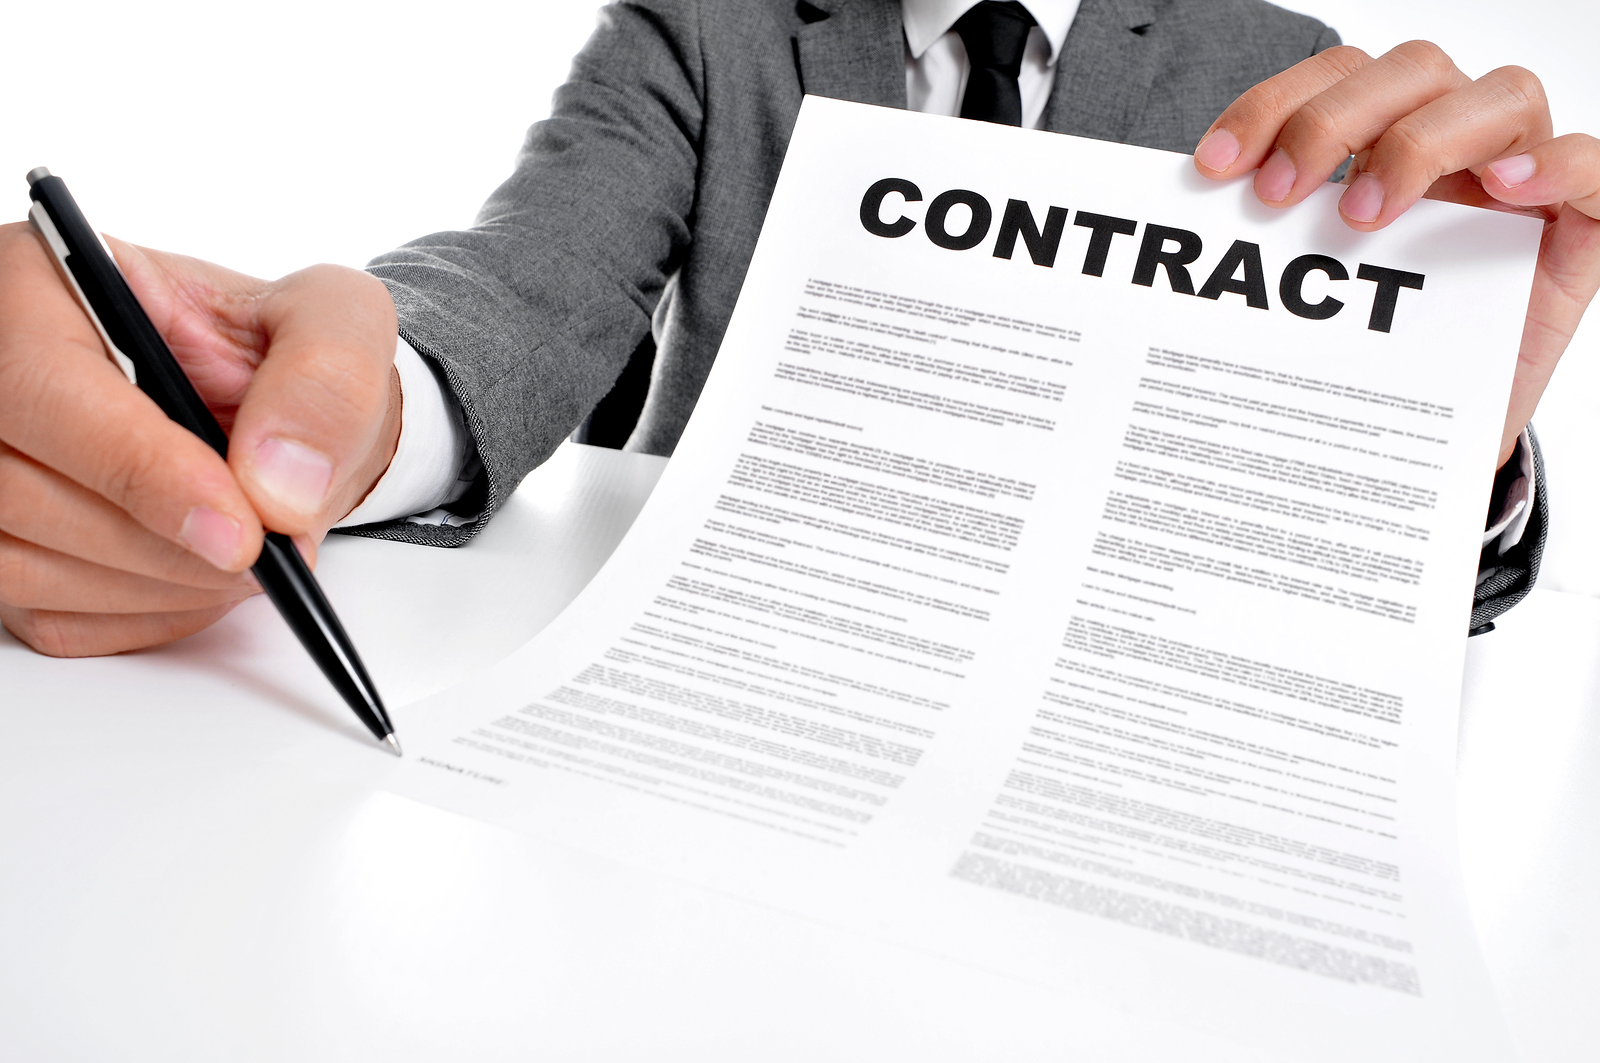 Contract Logistics Supply Chain Management Course Astute